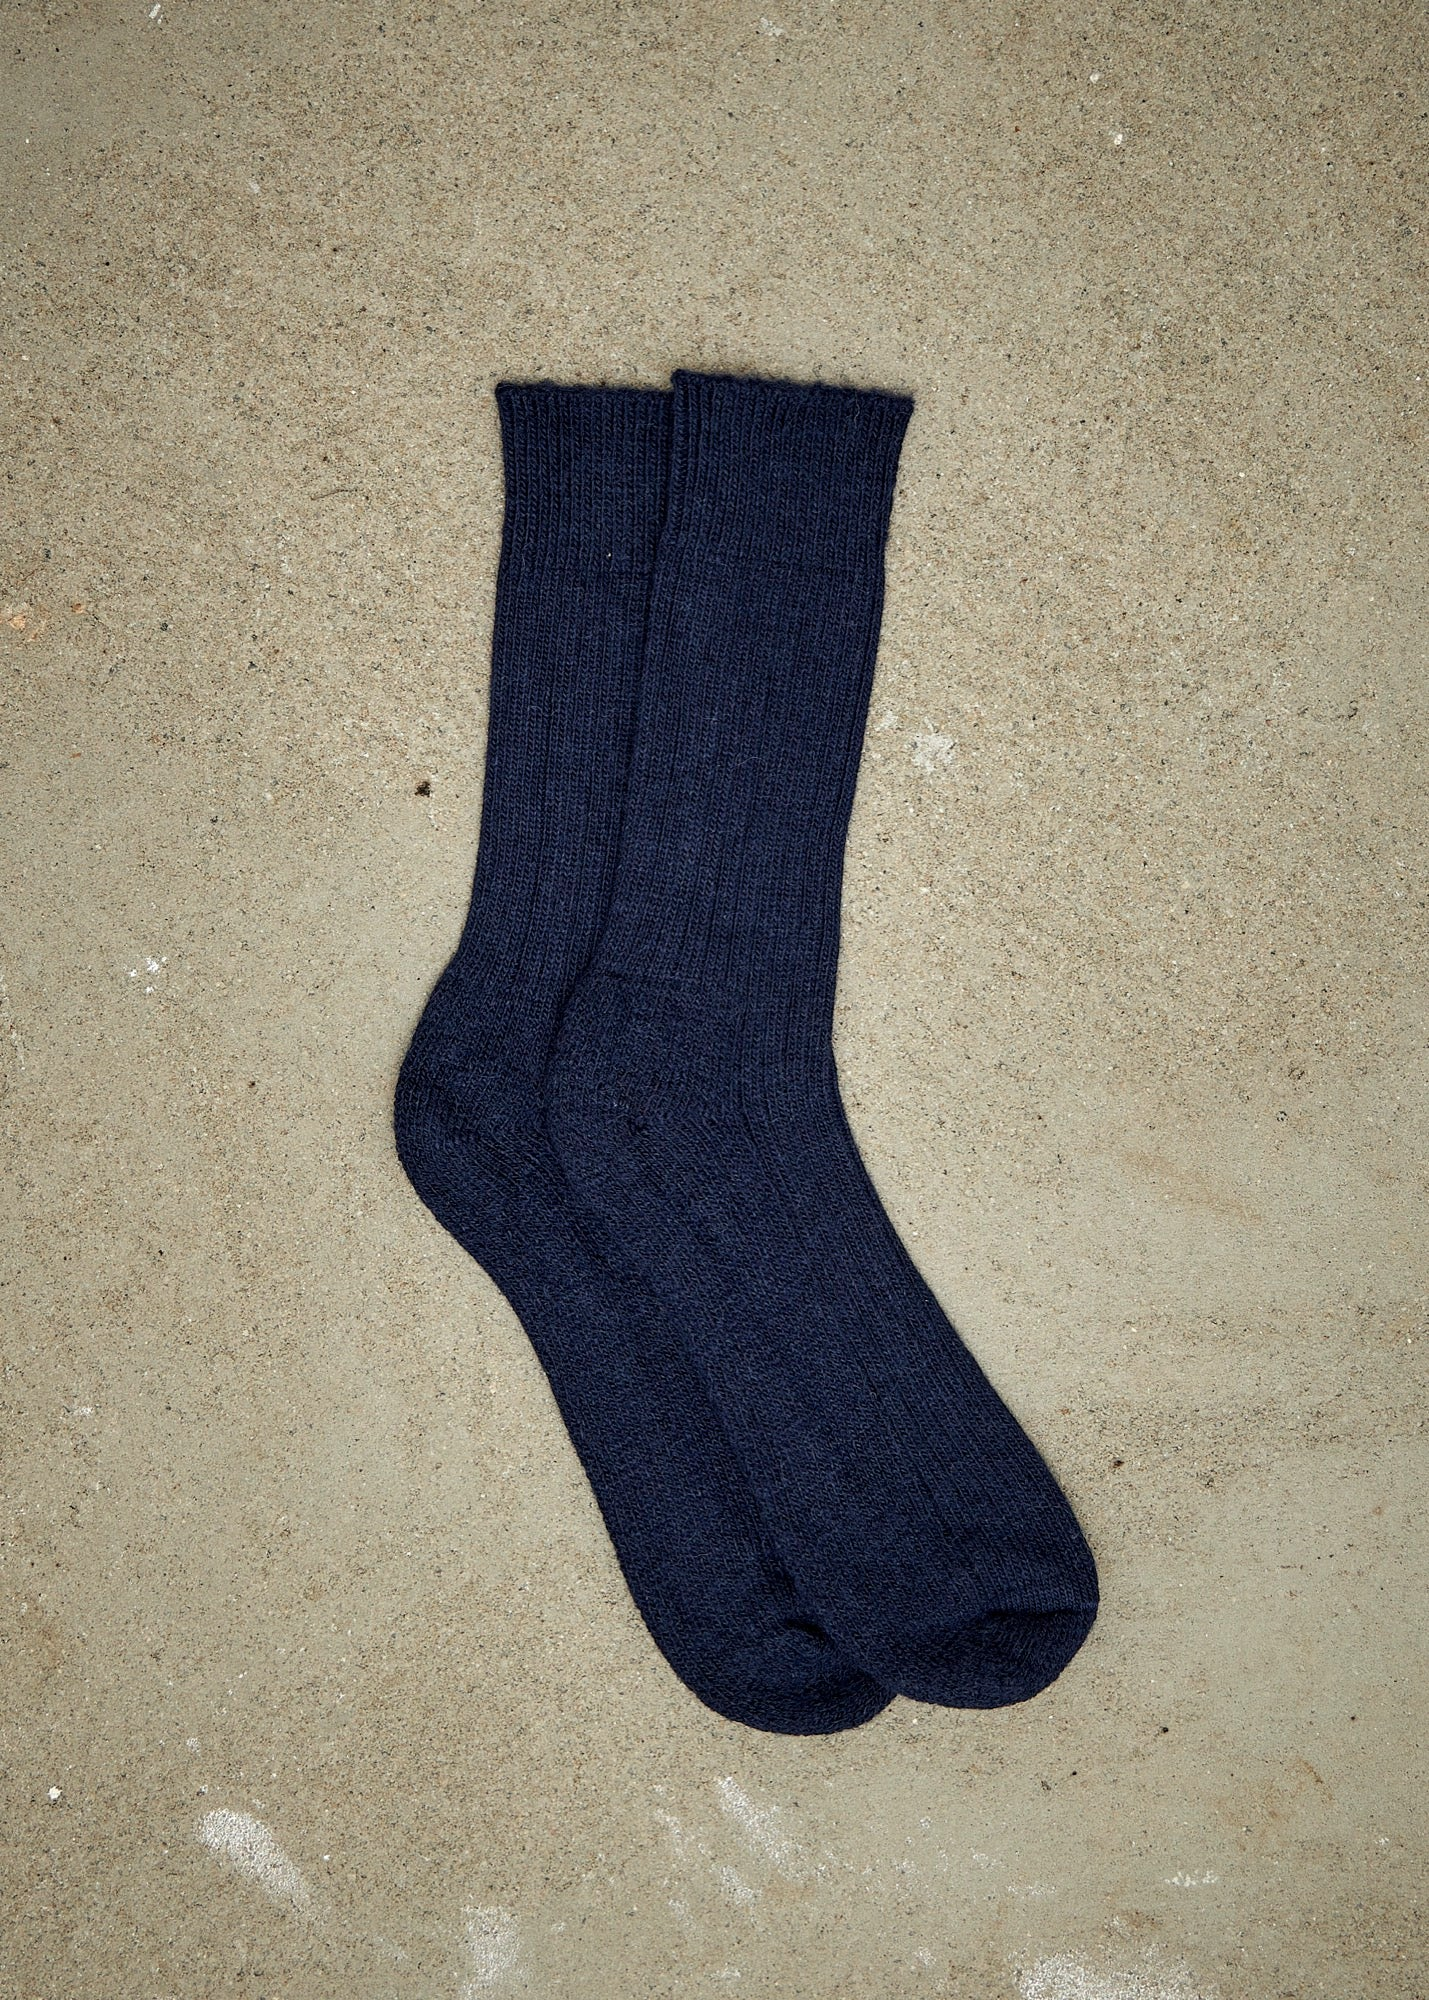 Working and Walking Socks - Navy